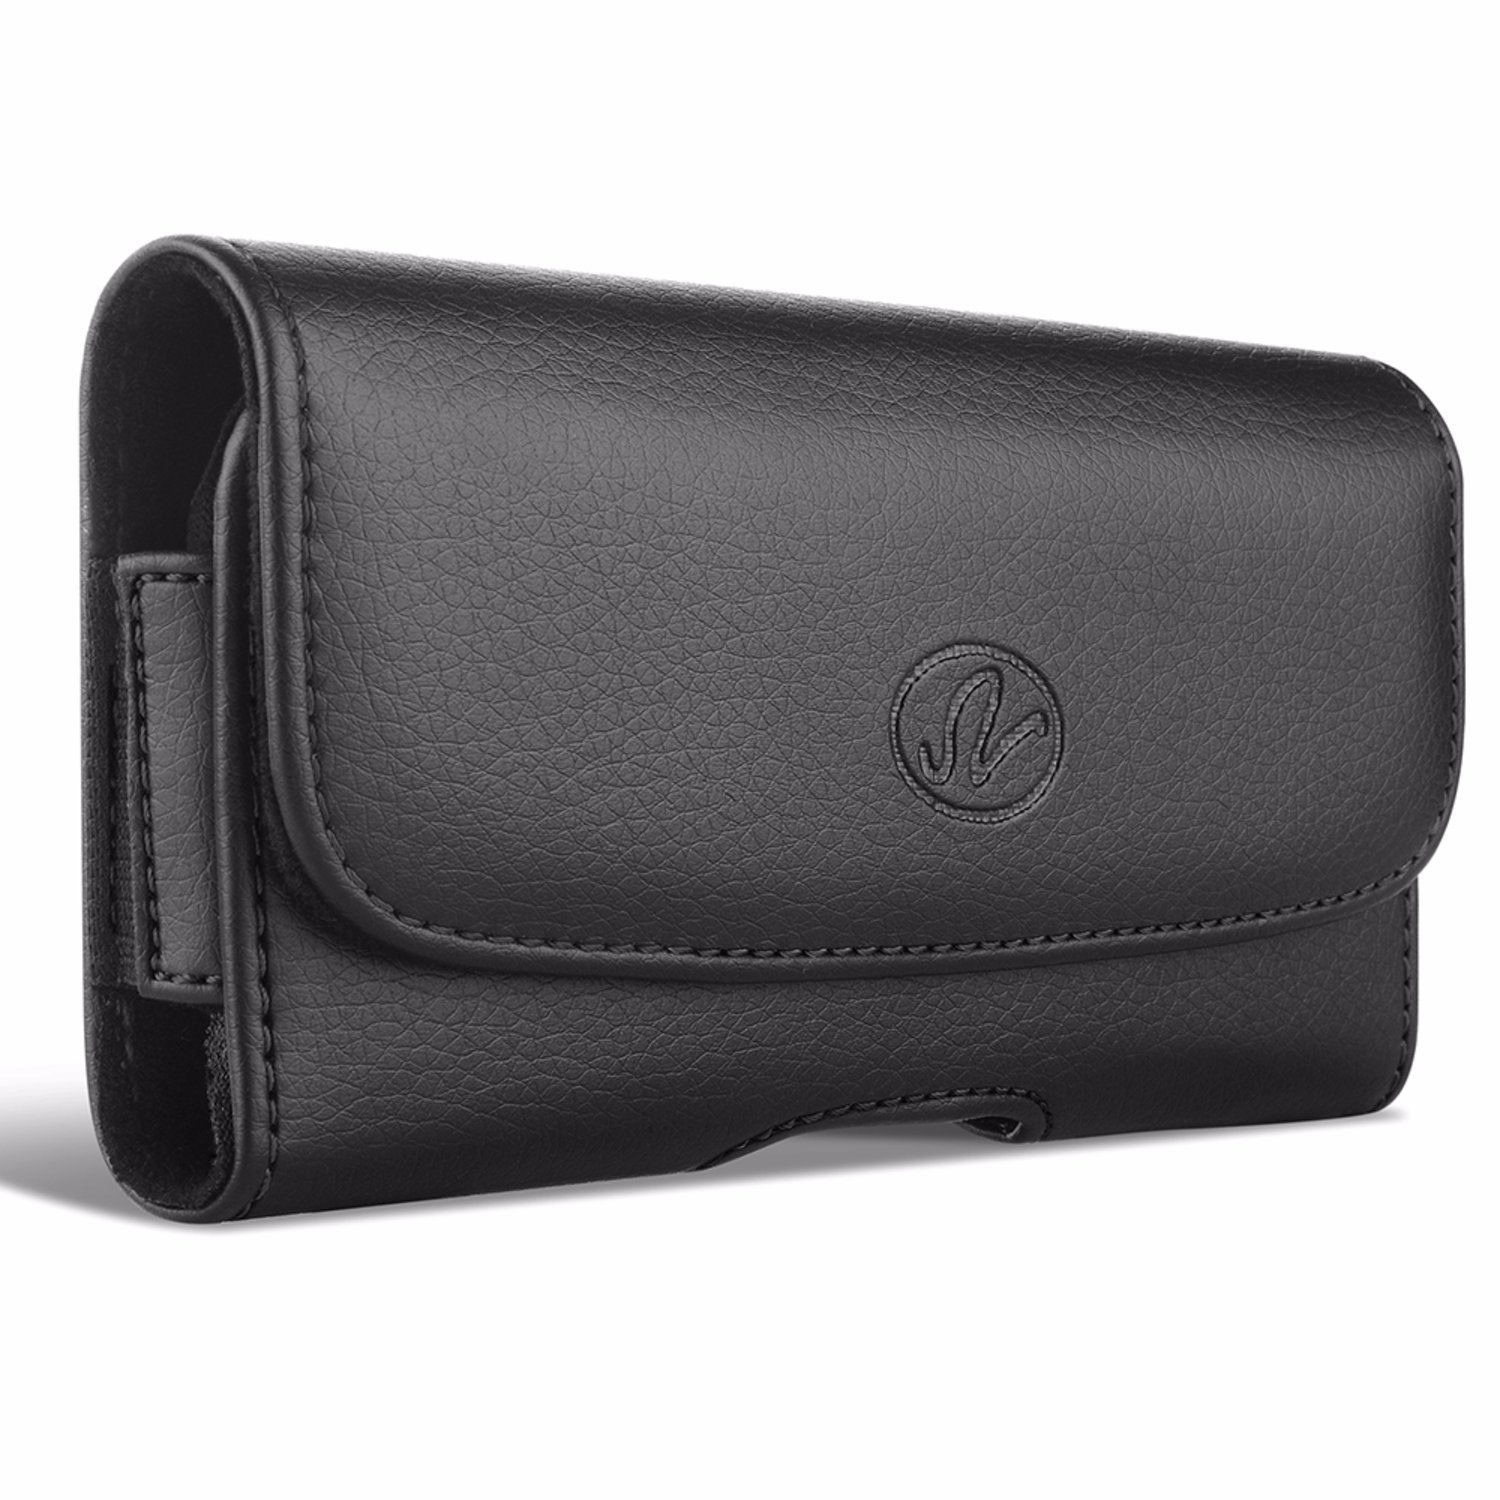 LG Q6 Premium Black Horizontal Leather Carrying Case Holster with Belt Clip & Belt Loops NEM Electronics